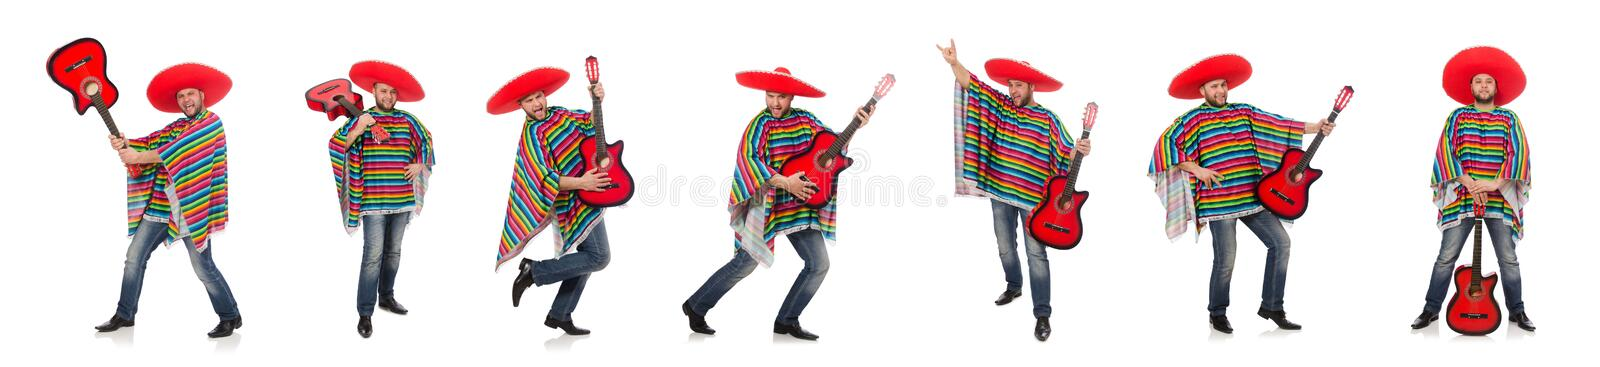 Funny mexican with guitar isolated on white. The funny mexican with guitar isolated on white royalty free stock photos